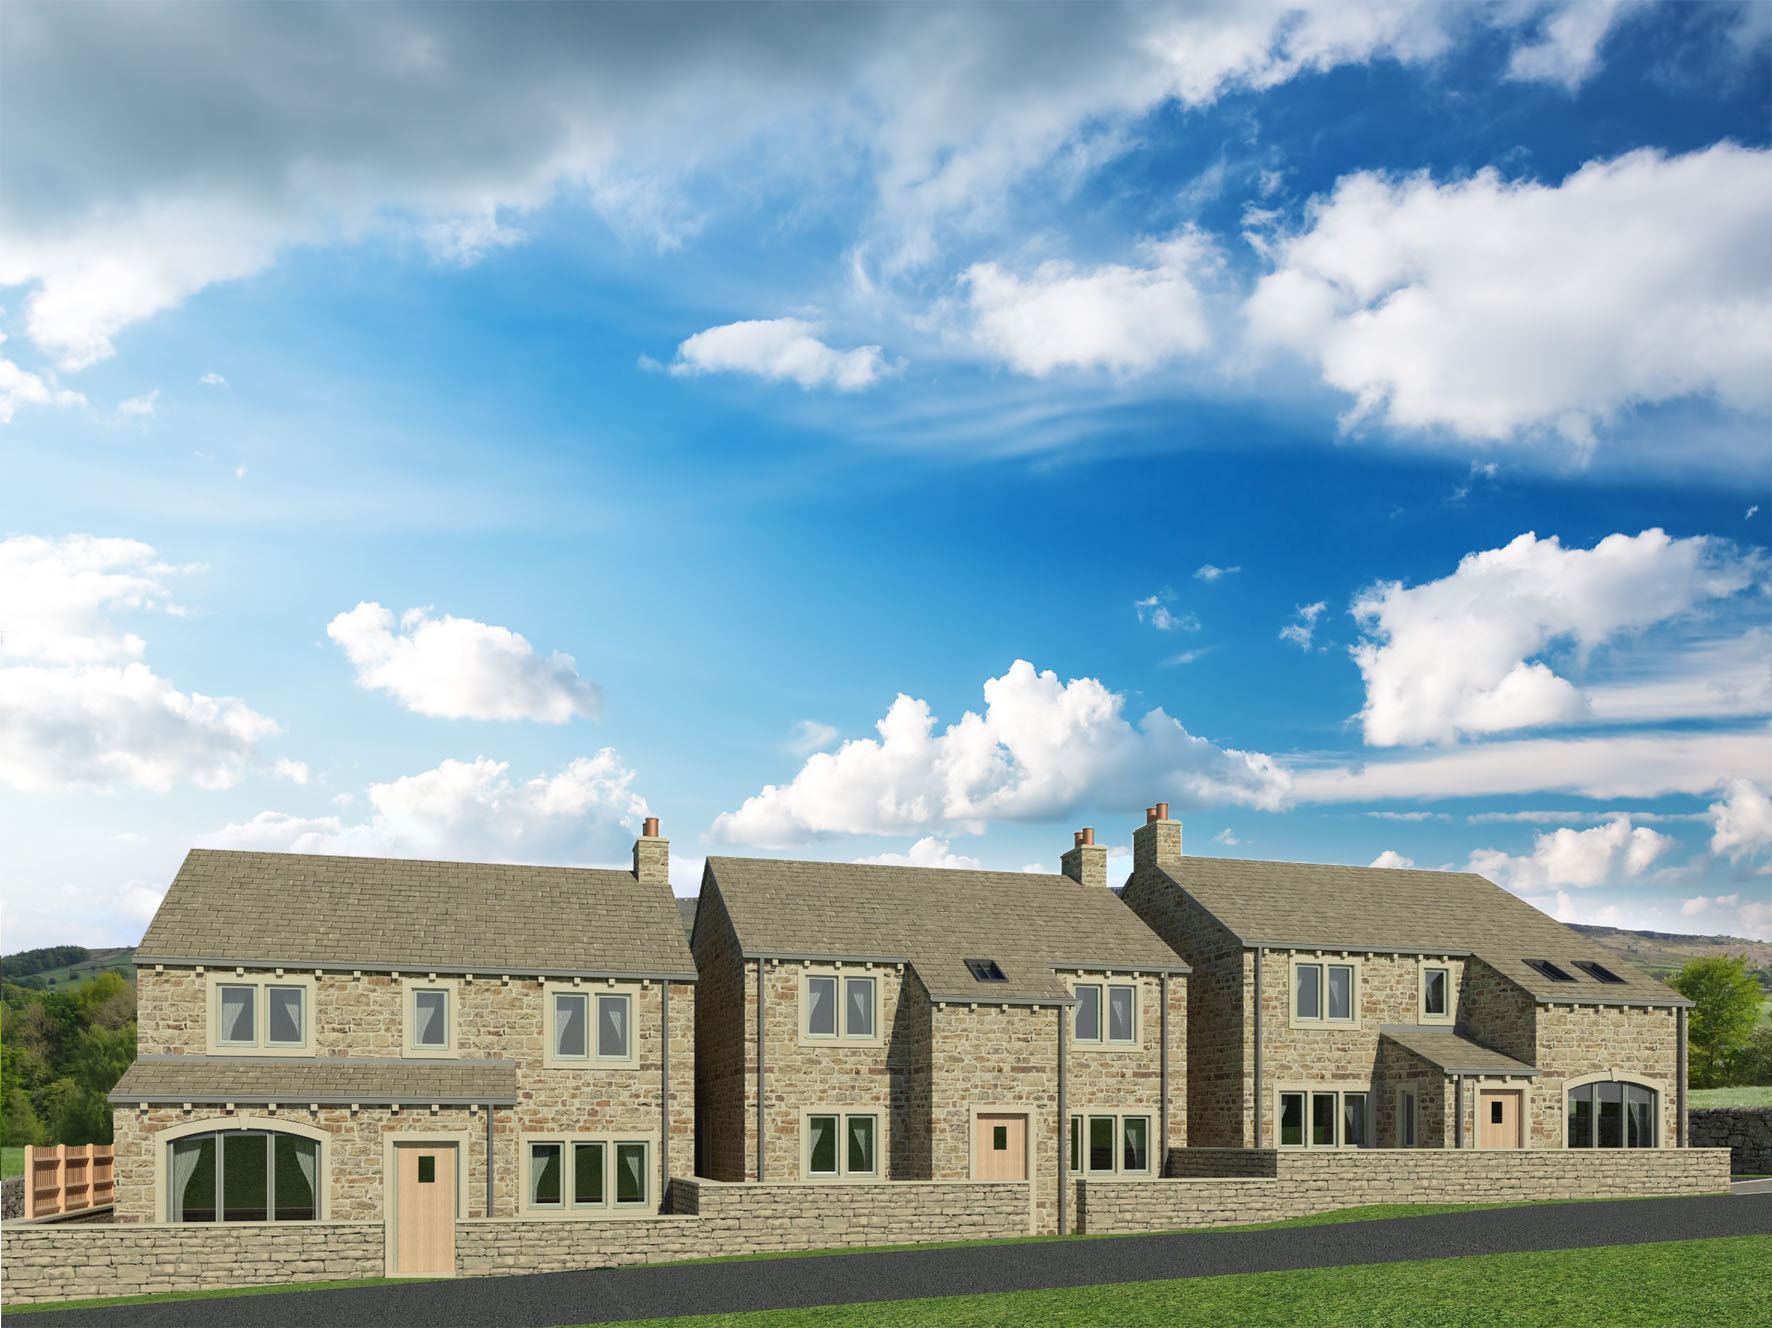 Lumb Mill Farm is a development of three detached new homes of high quality design and specification, with spacious 4 bedroomed accommodation, garages and gardens, close to open countryside, and convenient for the market town of Skipton and the surrounding area.